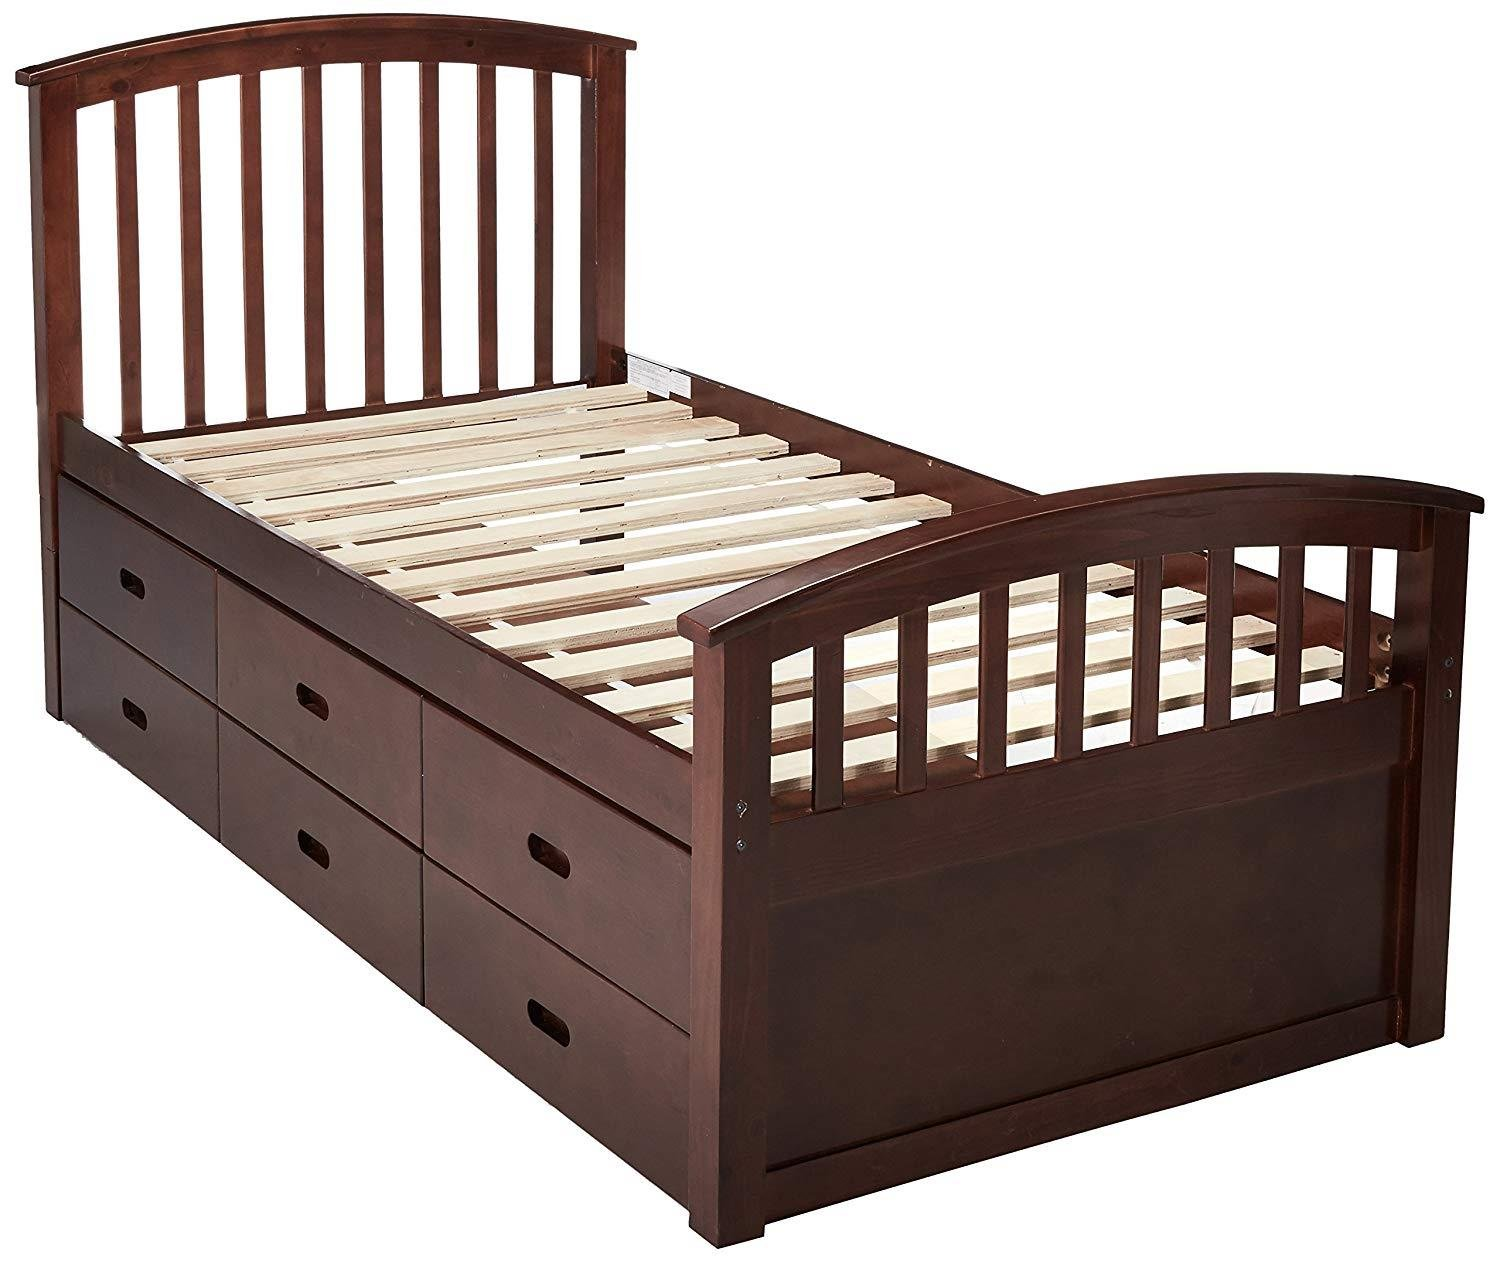 DONCO KIDS 425CP 6 Drawer Storage Bed, Twin, Dark Cappuccino by DONCO KIDS